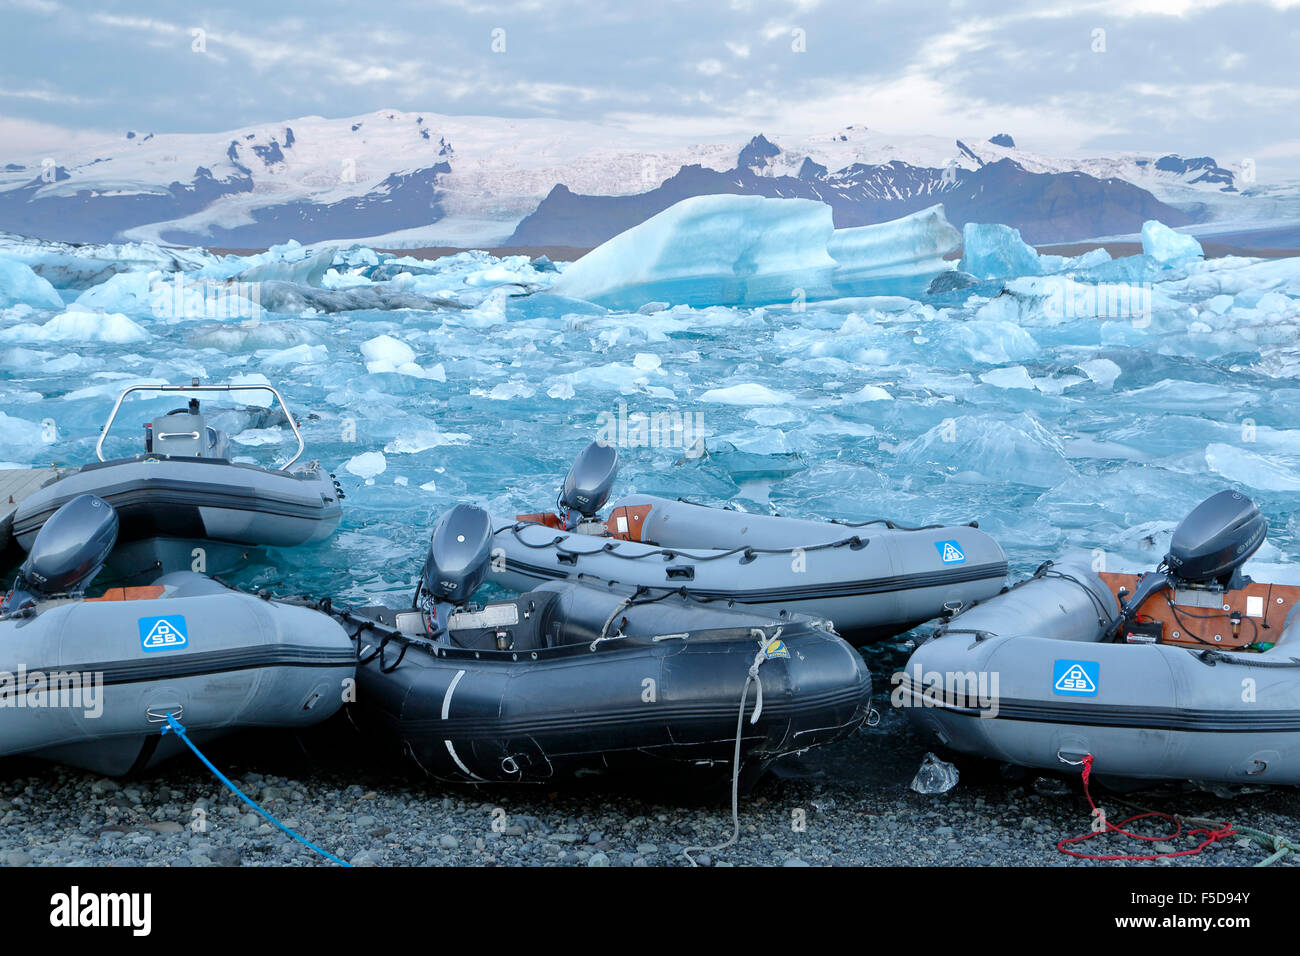 Dinghies, icebergs and snow-covered mountains, Jokulsarlon Glacier Lagoon,  Vatnajokull National Park, Iceland - Stock Image